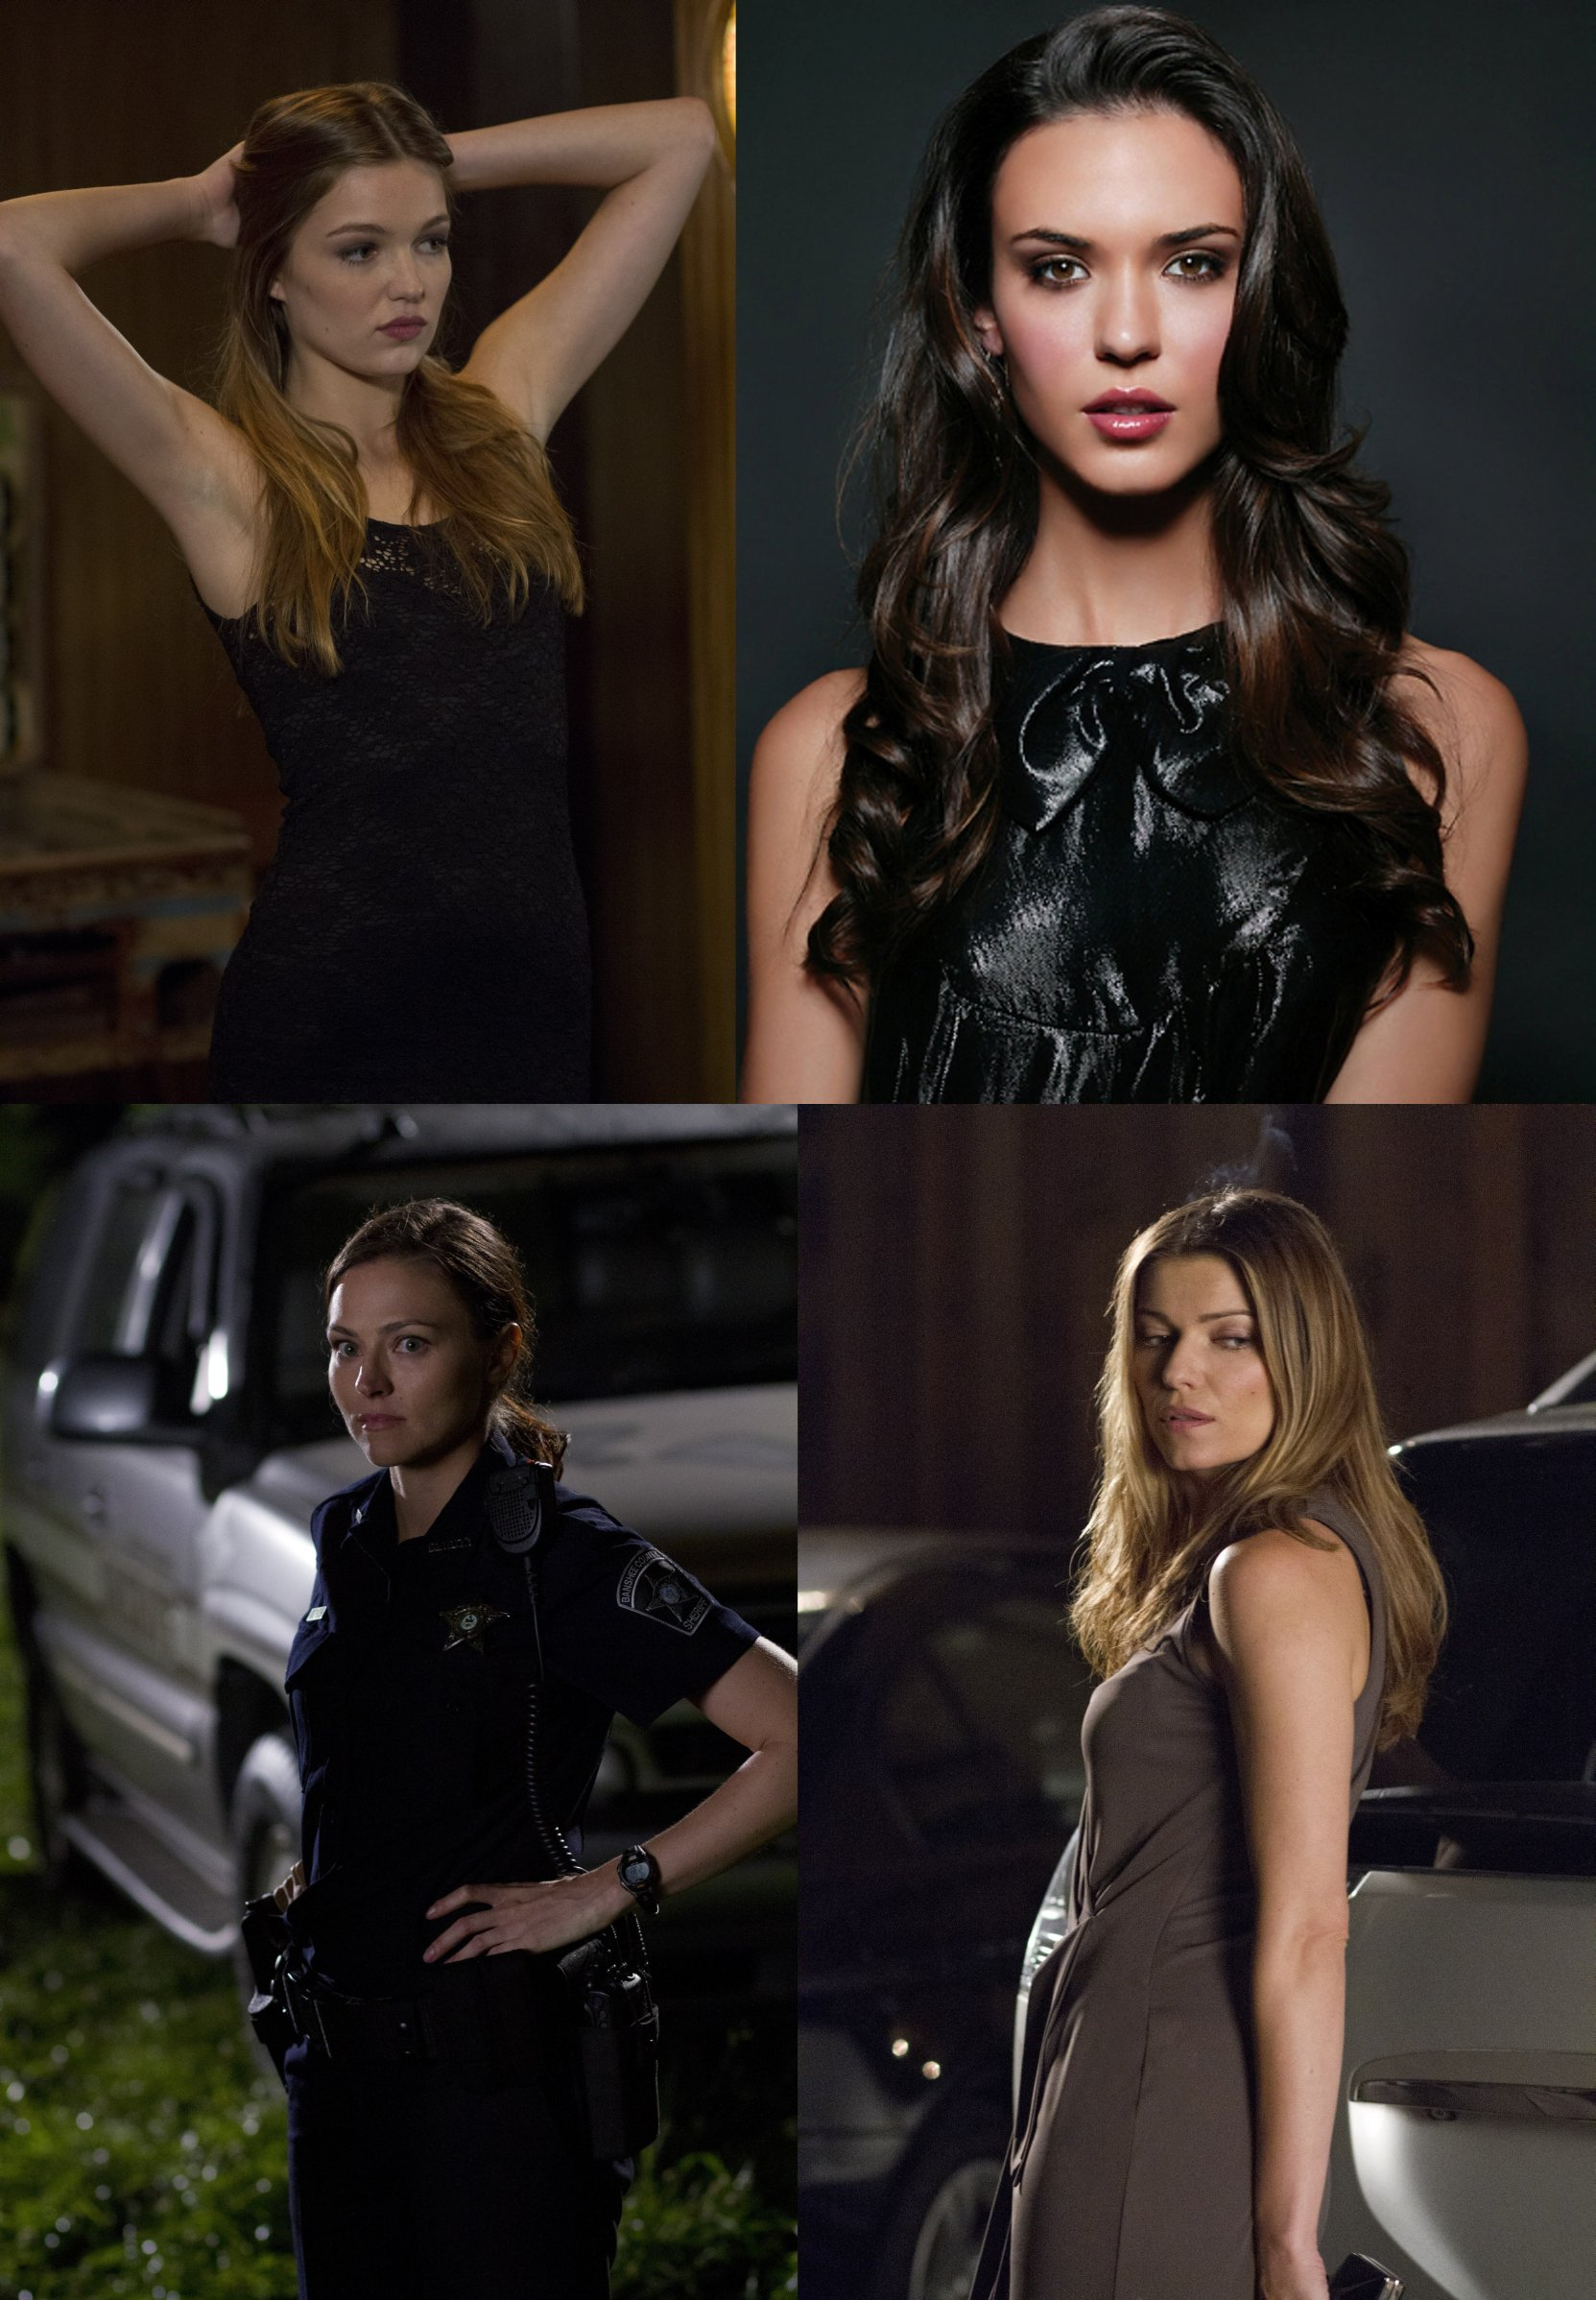 Lily simmons trieste kelly dunn banshee s2e06 - 1 3